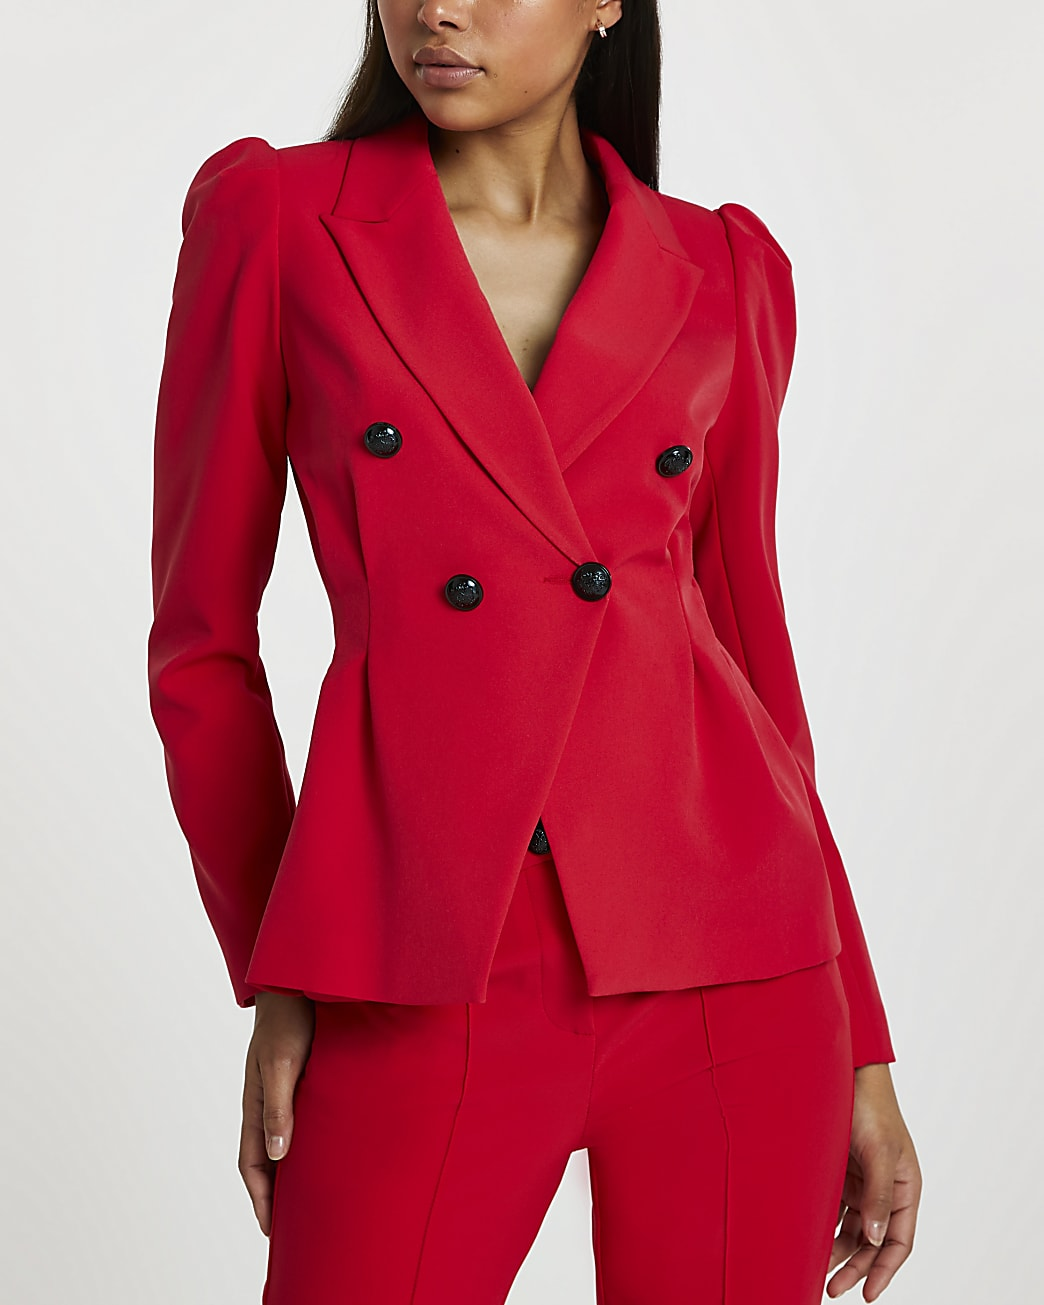 Red double breasted cinch waist blazer